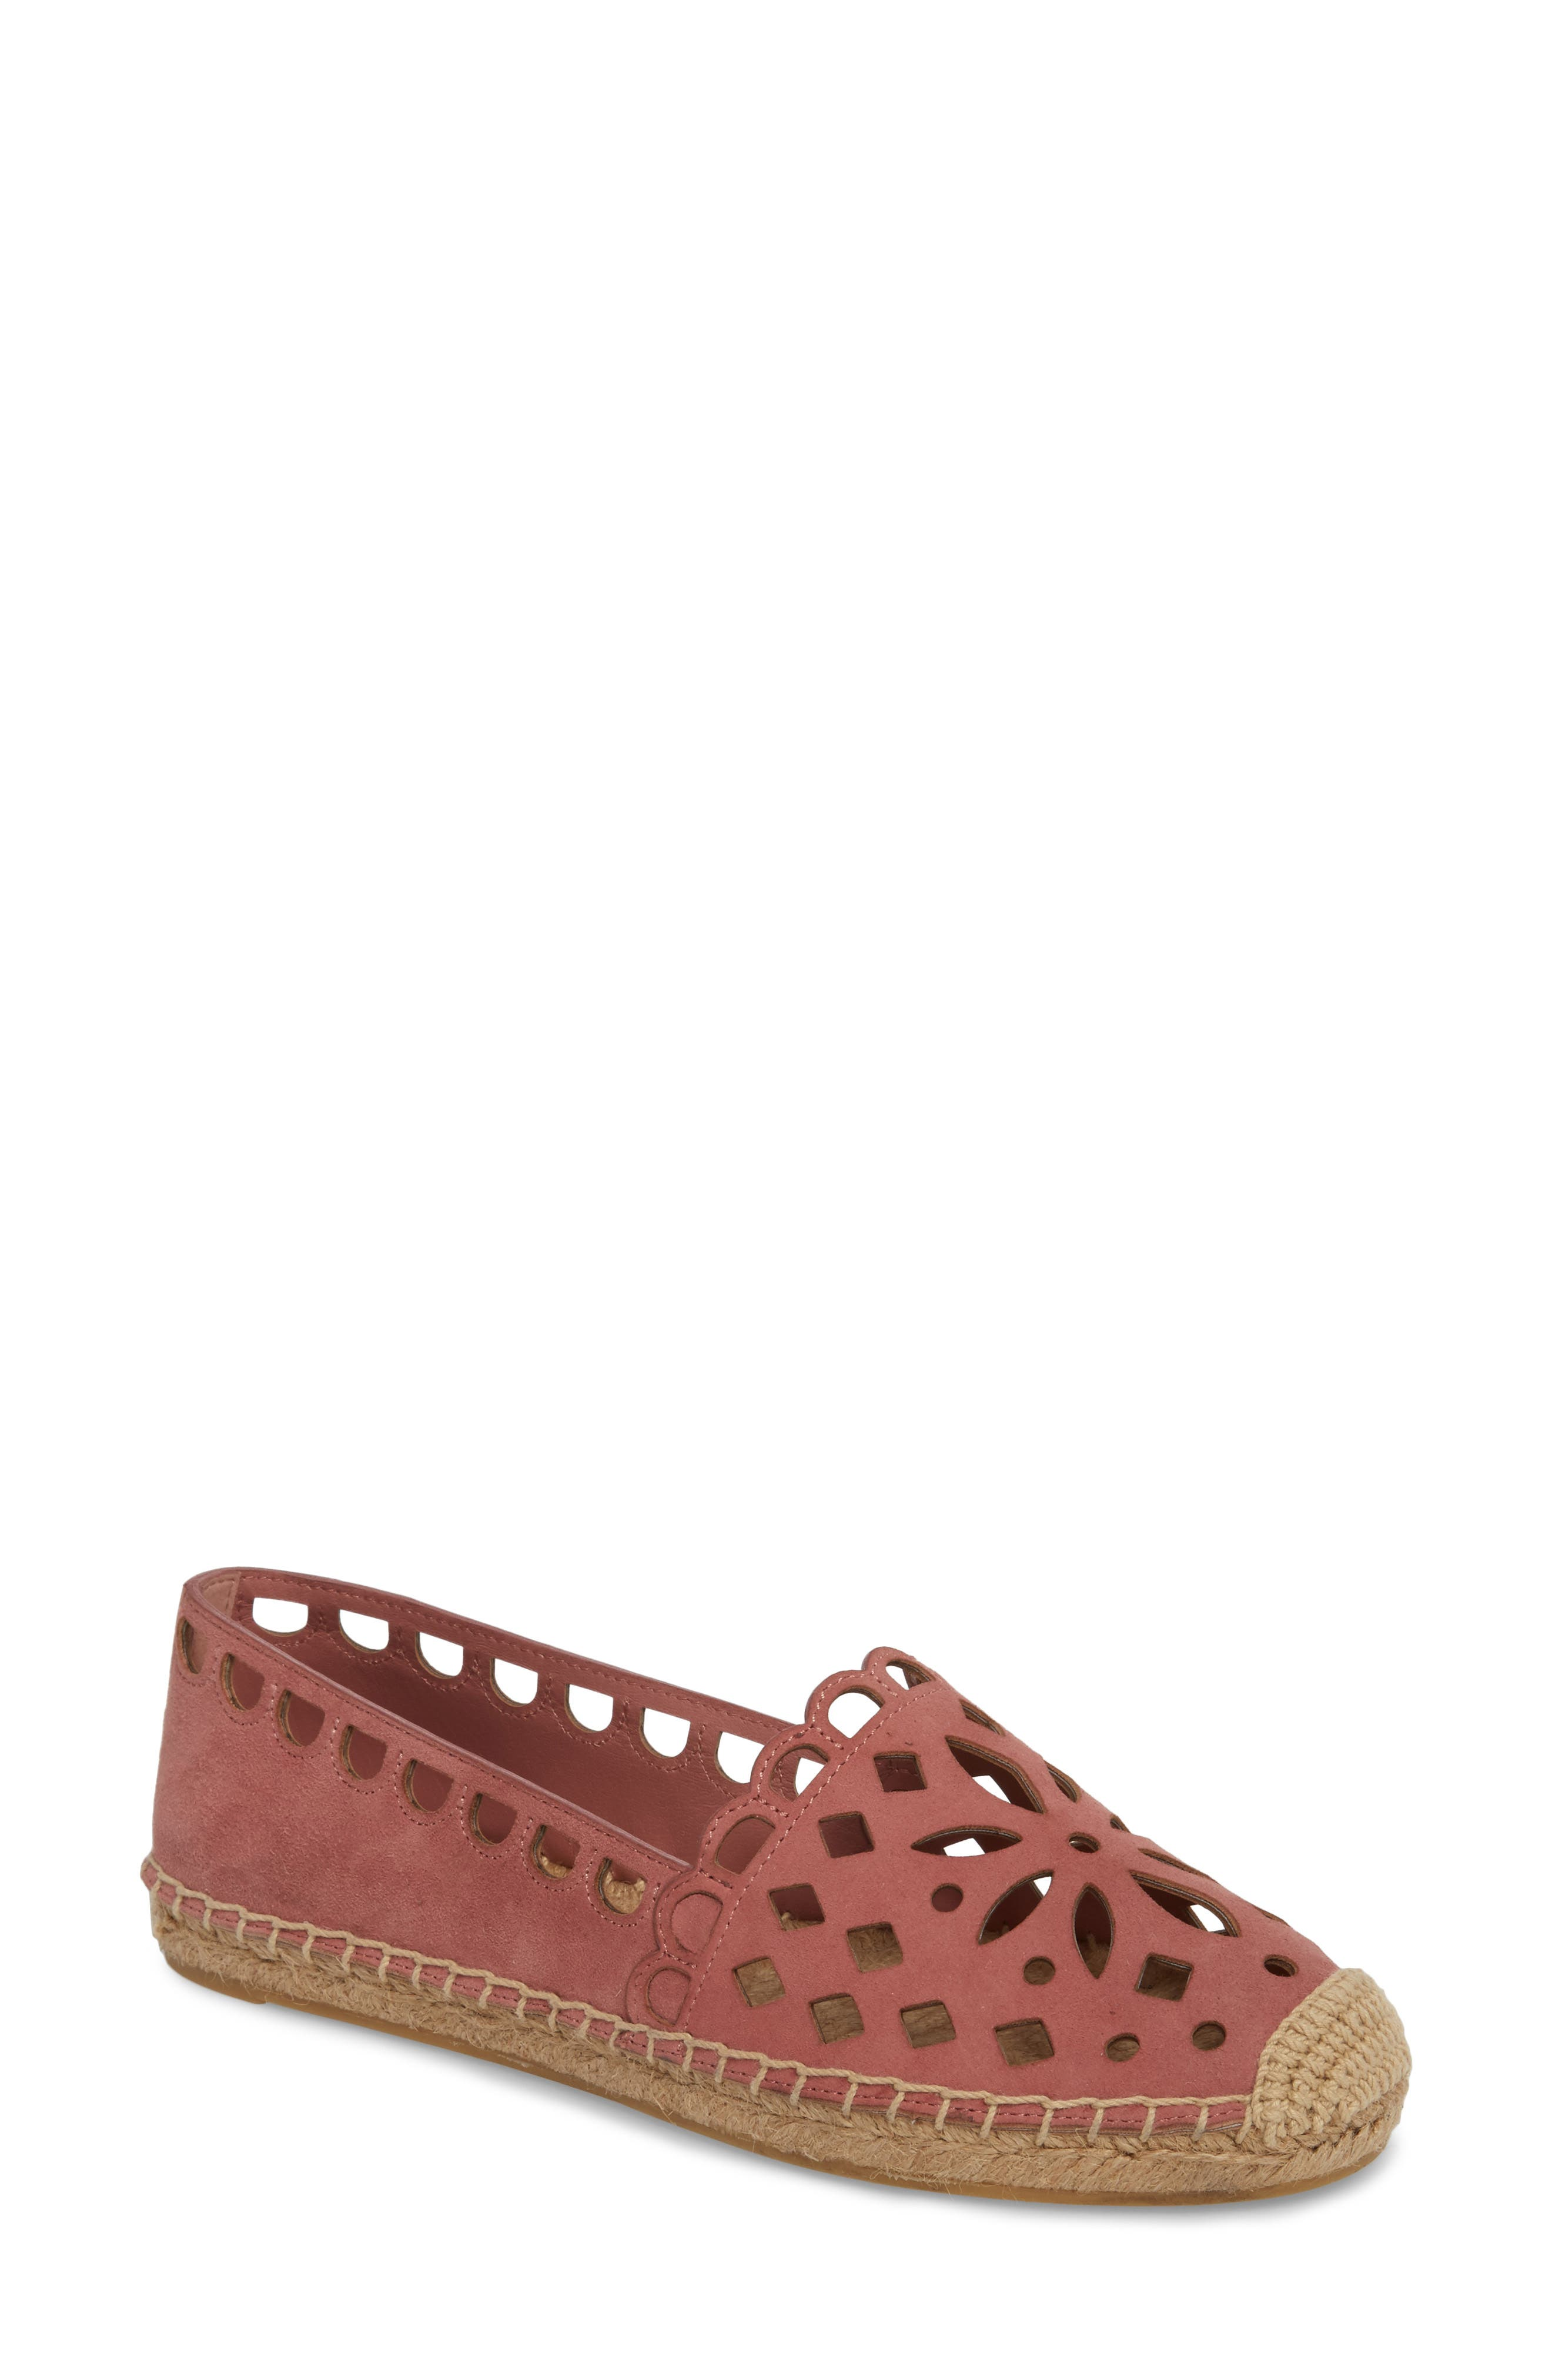 95418f48009 Tory Burch May Perforated Espadrille Flat In Pink Magnolia